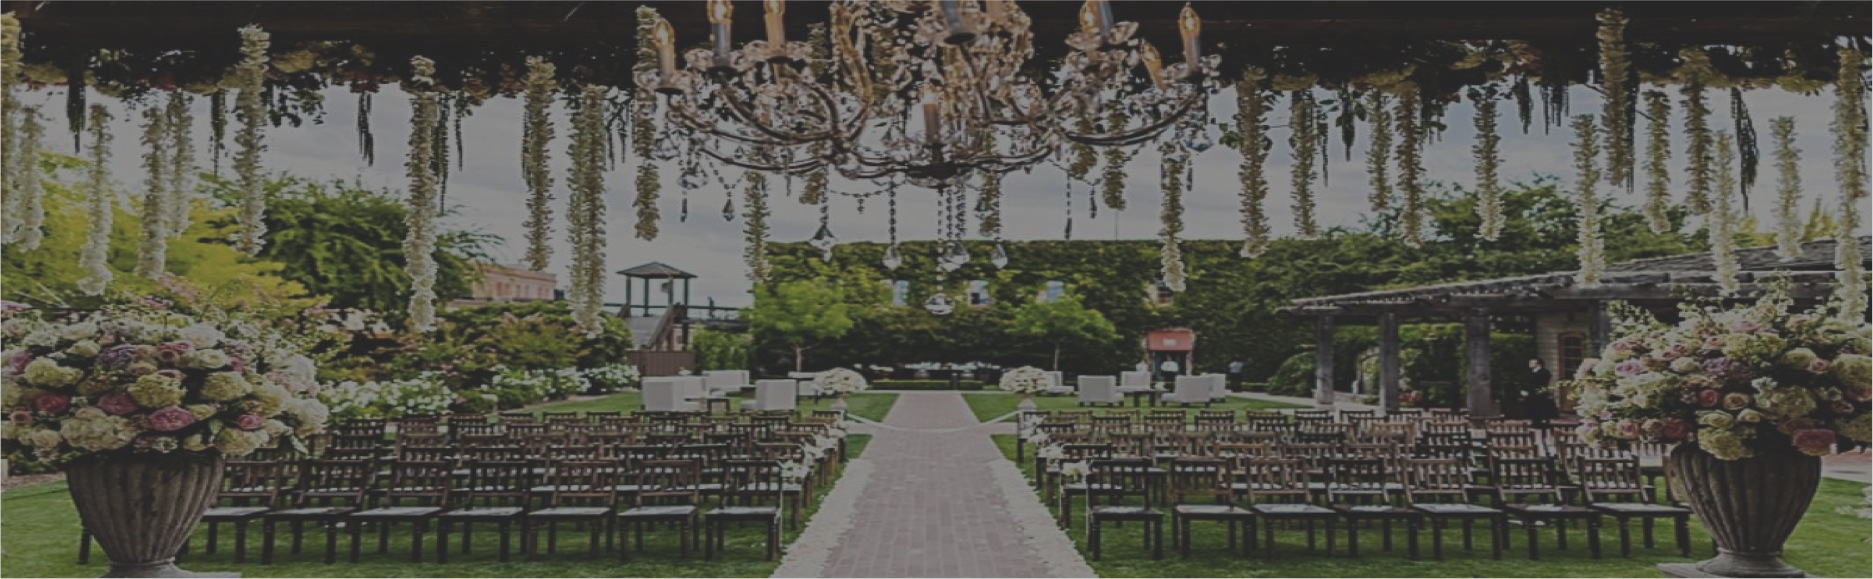 winery vineyard wedding locations price compare venues